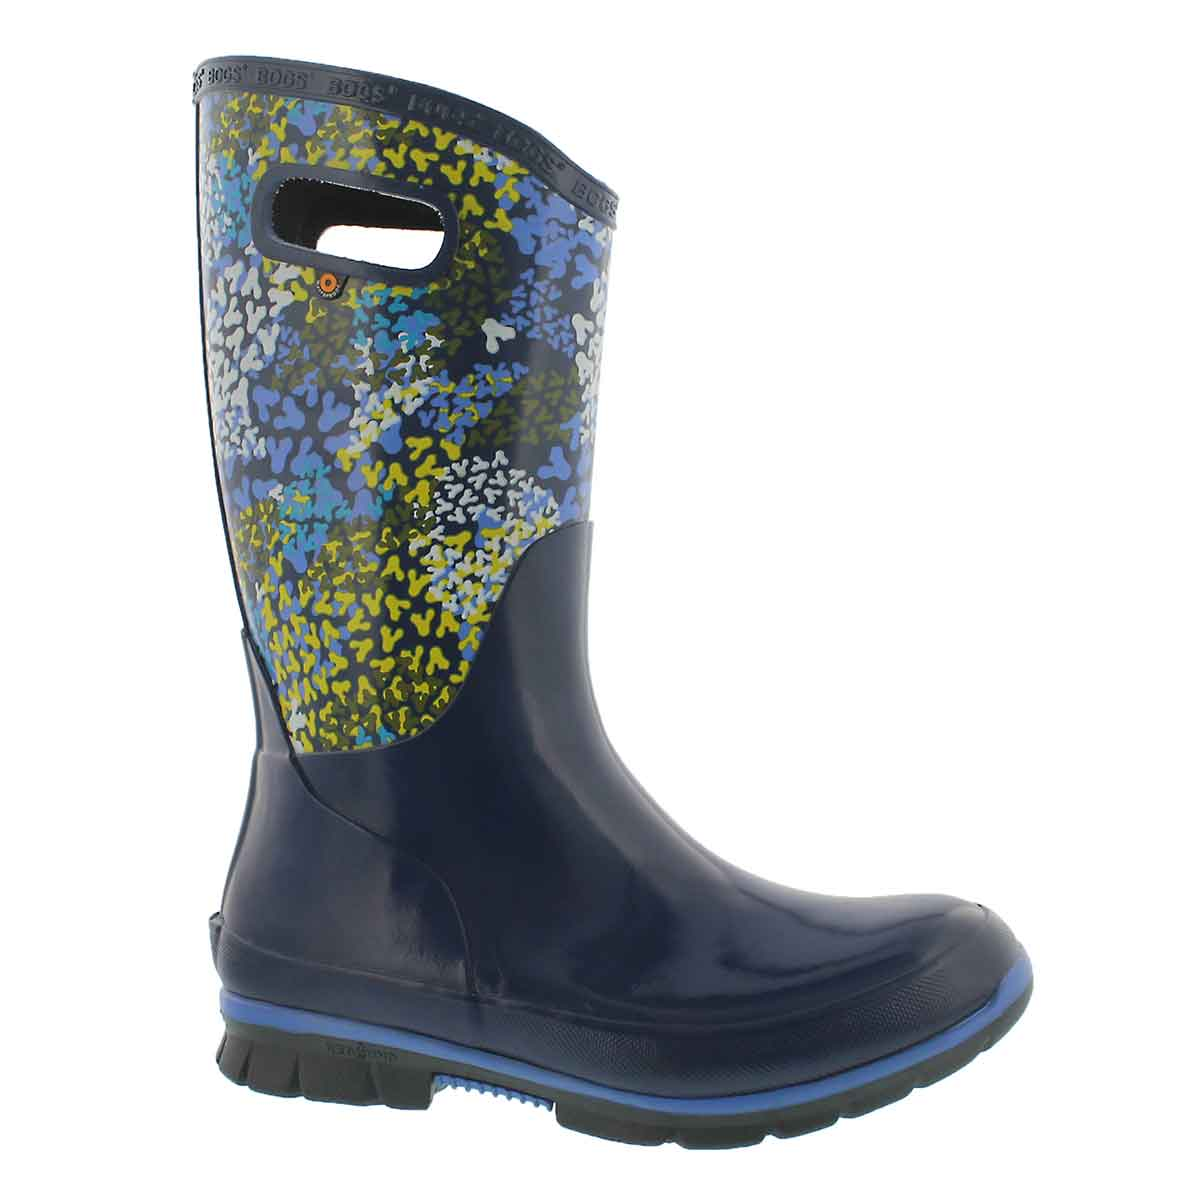 Women's BERKLEY FP blu multi waterproof rain boots